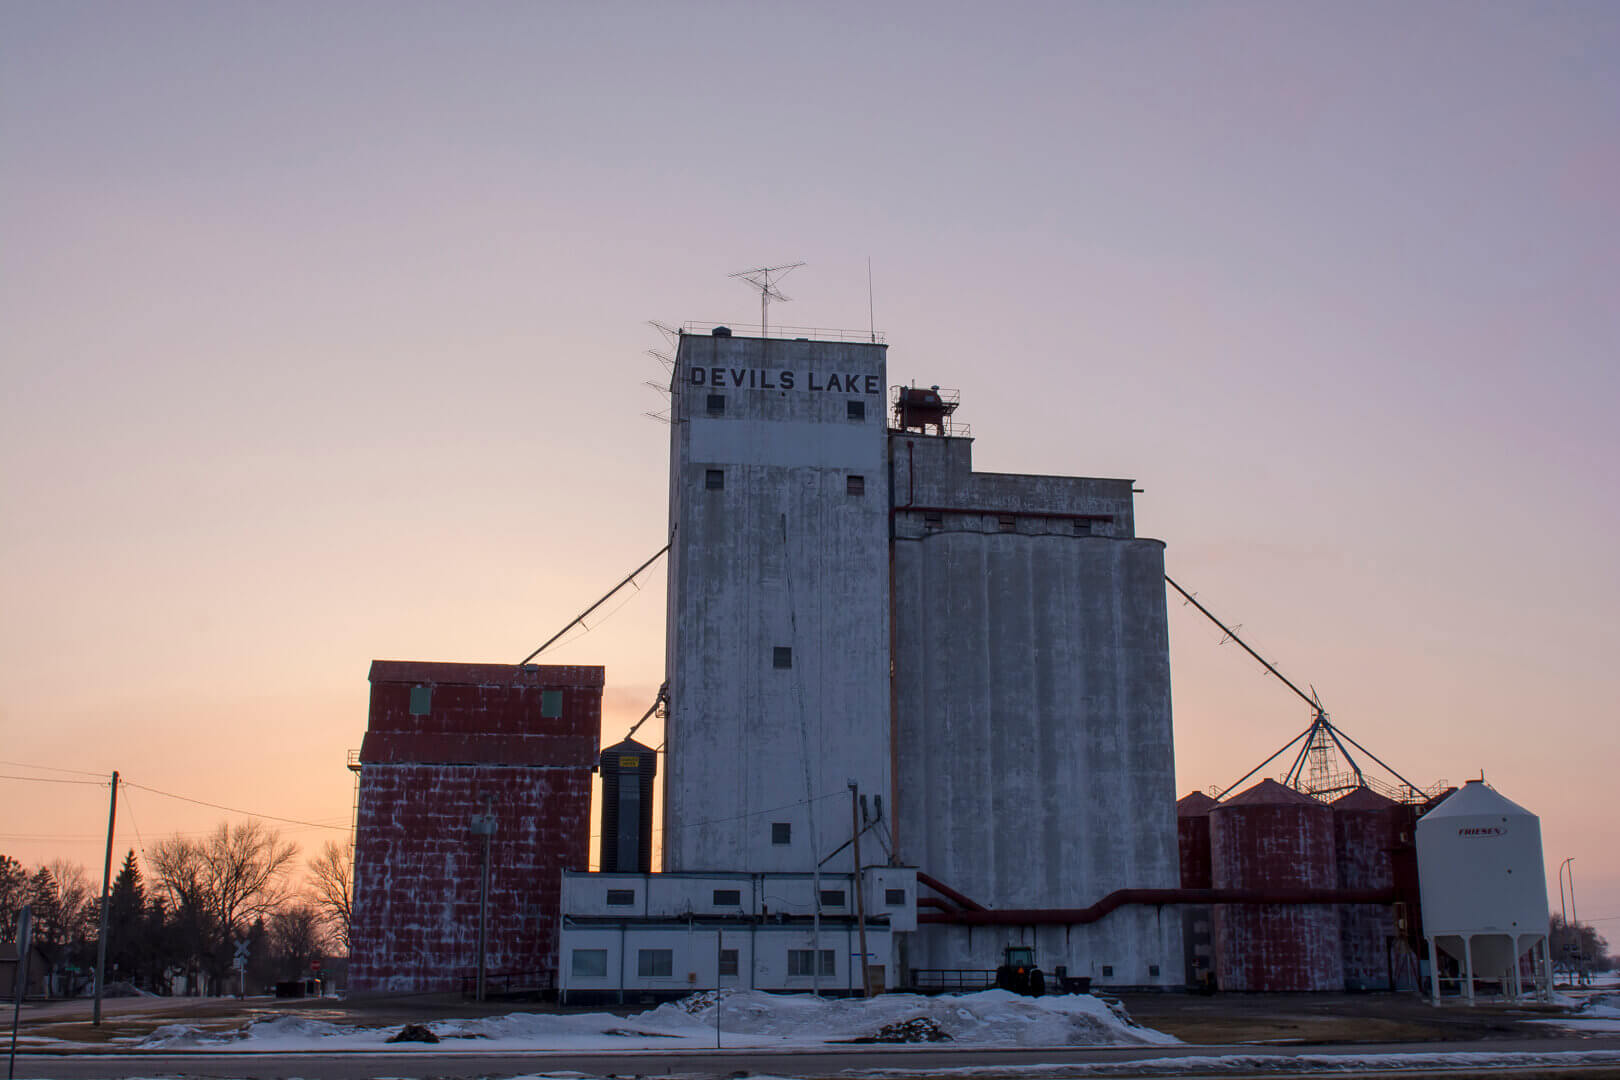 Grain silos during a winter sunset in Devil's Lake, North Dakota